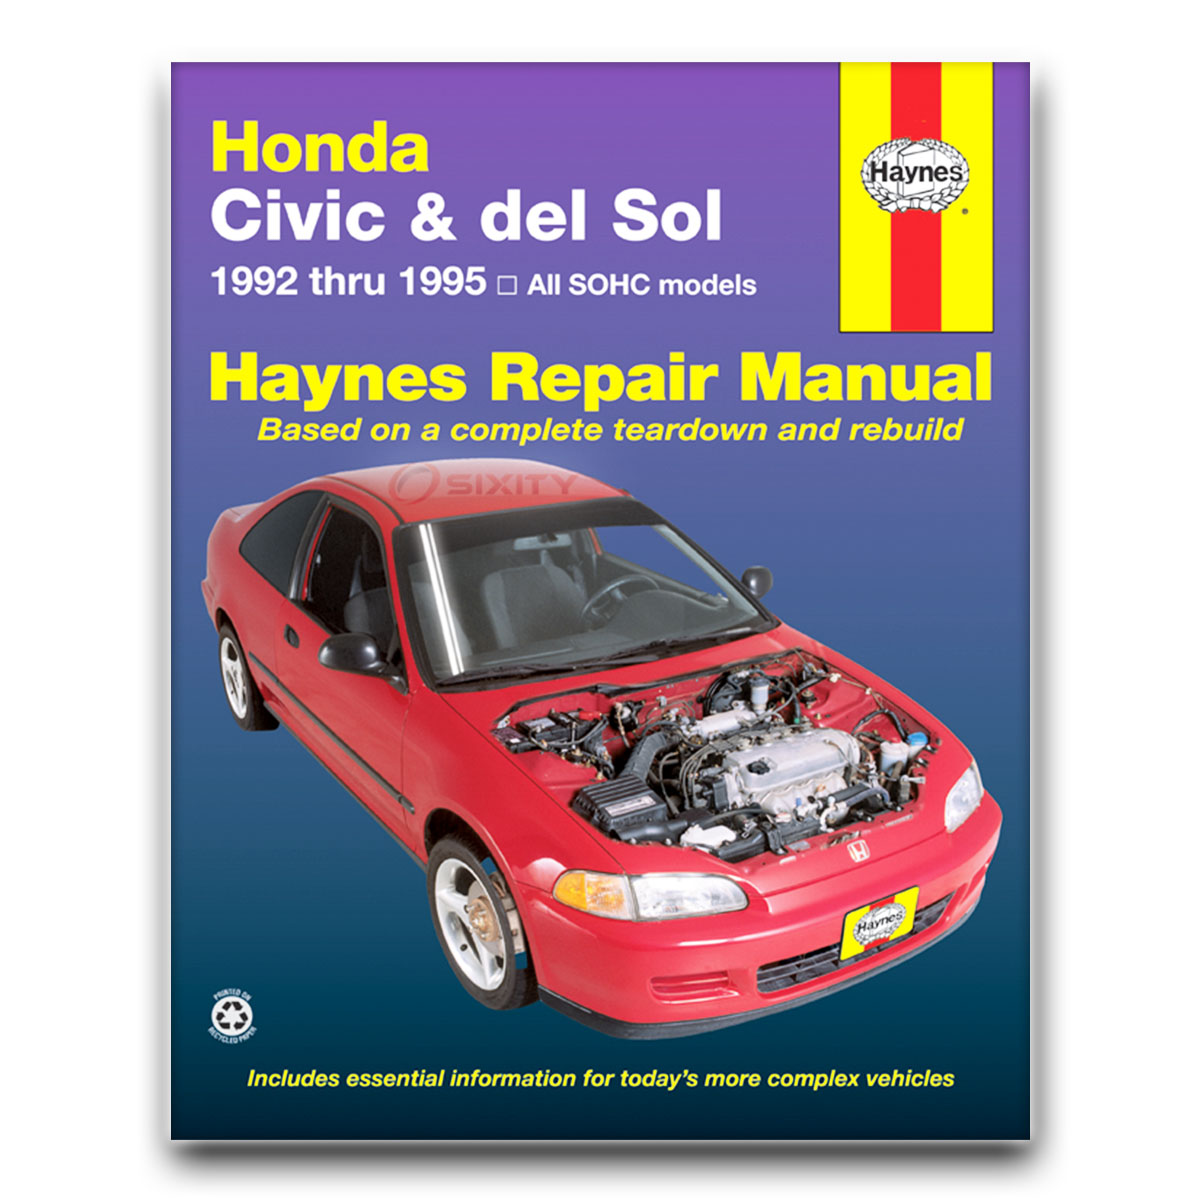 honda civic del sol haynes repair manual s si vtec shop service rh ebay com Honda Civic Manual Water PU Honda Civic Parts Catalog